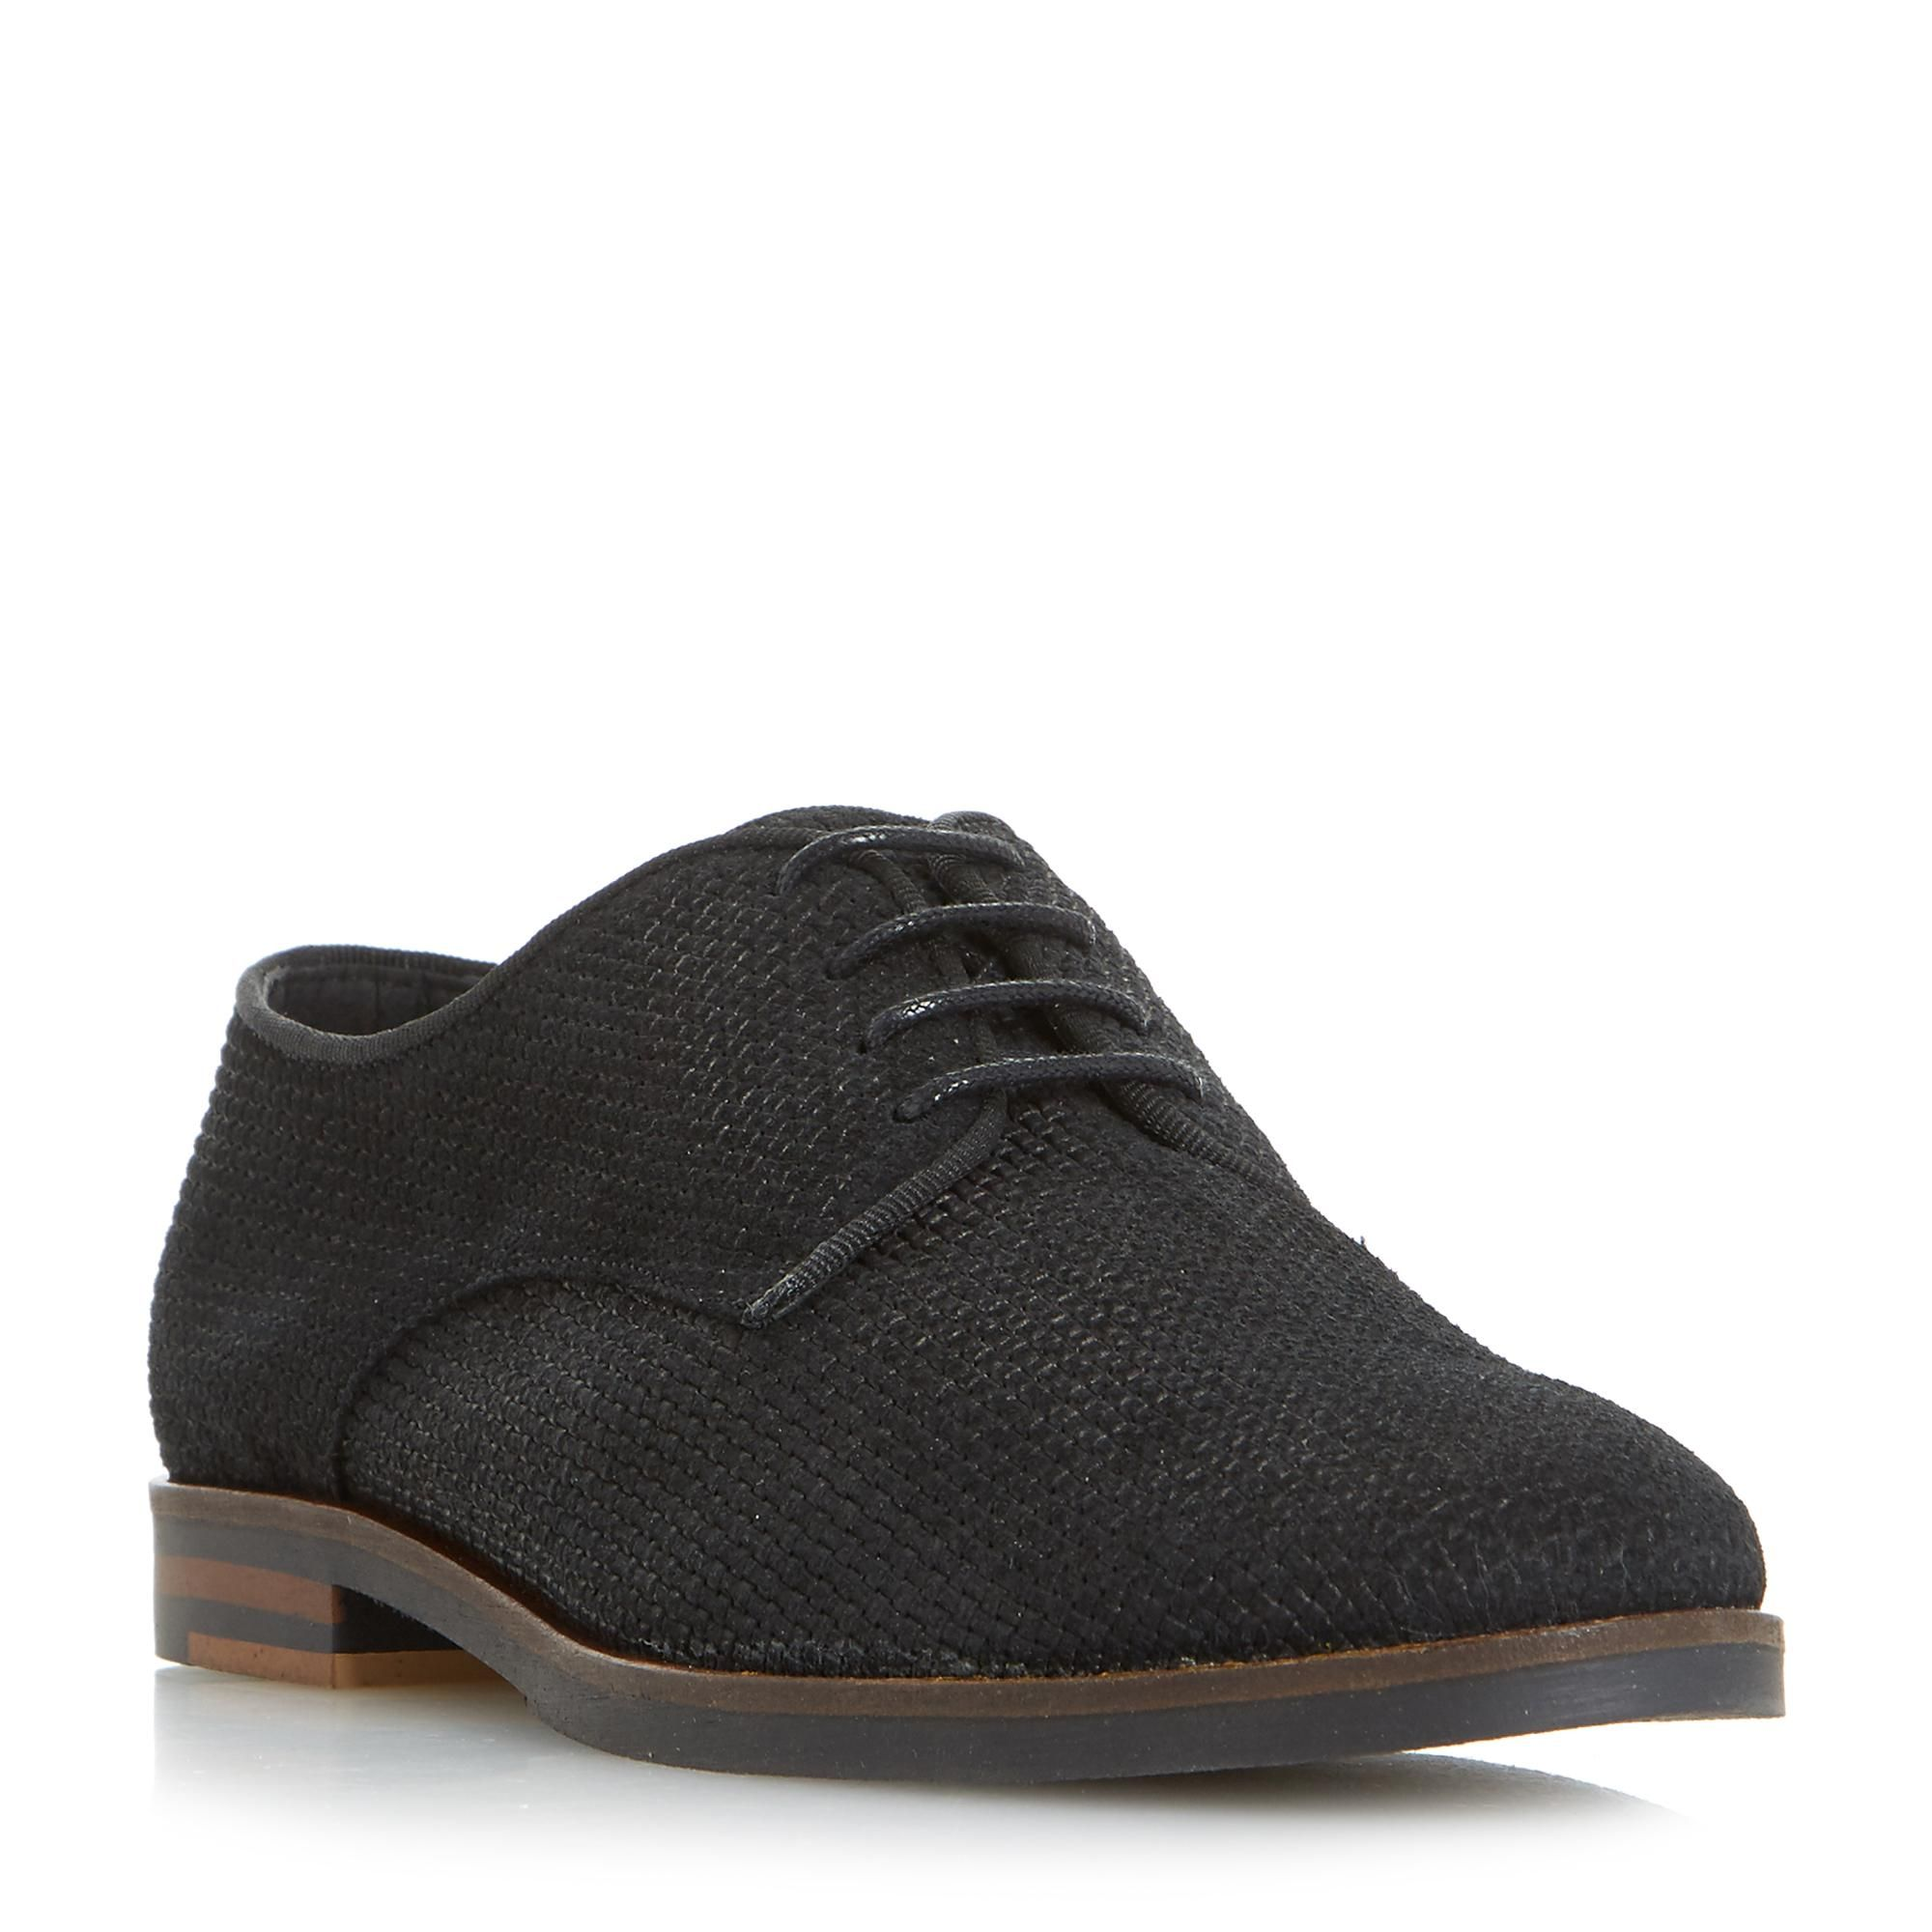 where can i order Black 'Fadia' lace up flat derby shoes buy cheap brand new unisex free shipping perfect S64Qd